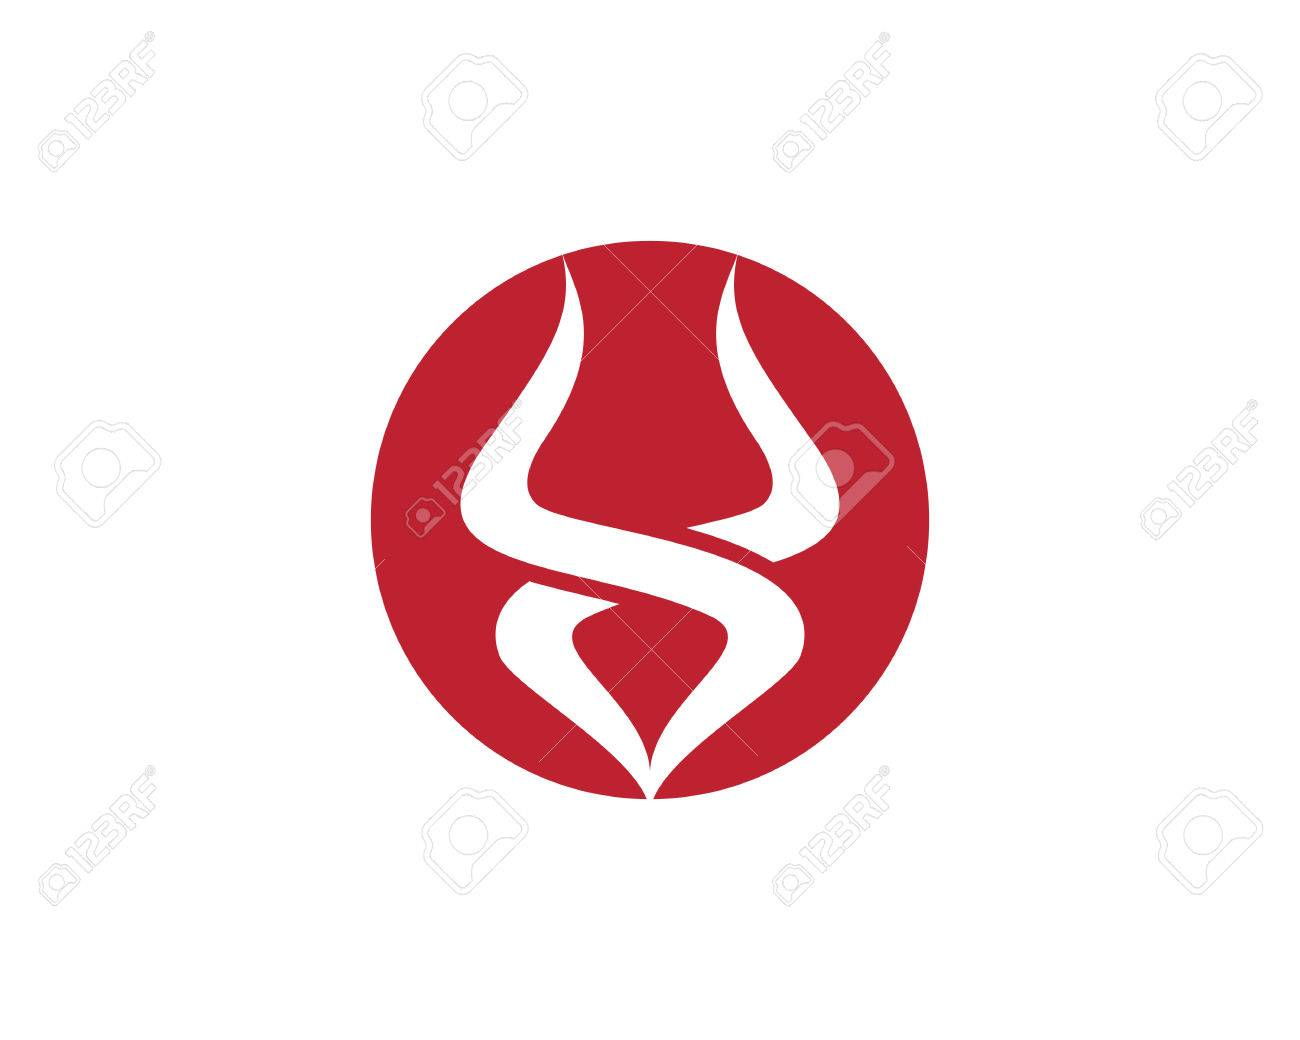 taurus logo template royalty free cliparts vectors and stock rh 123rf com taurus logo fonts taurus logo images